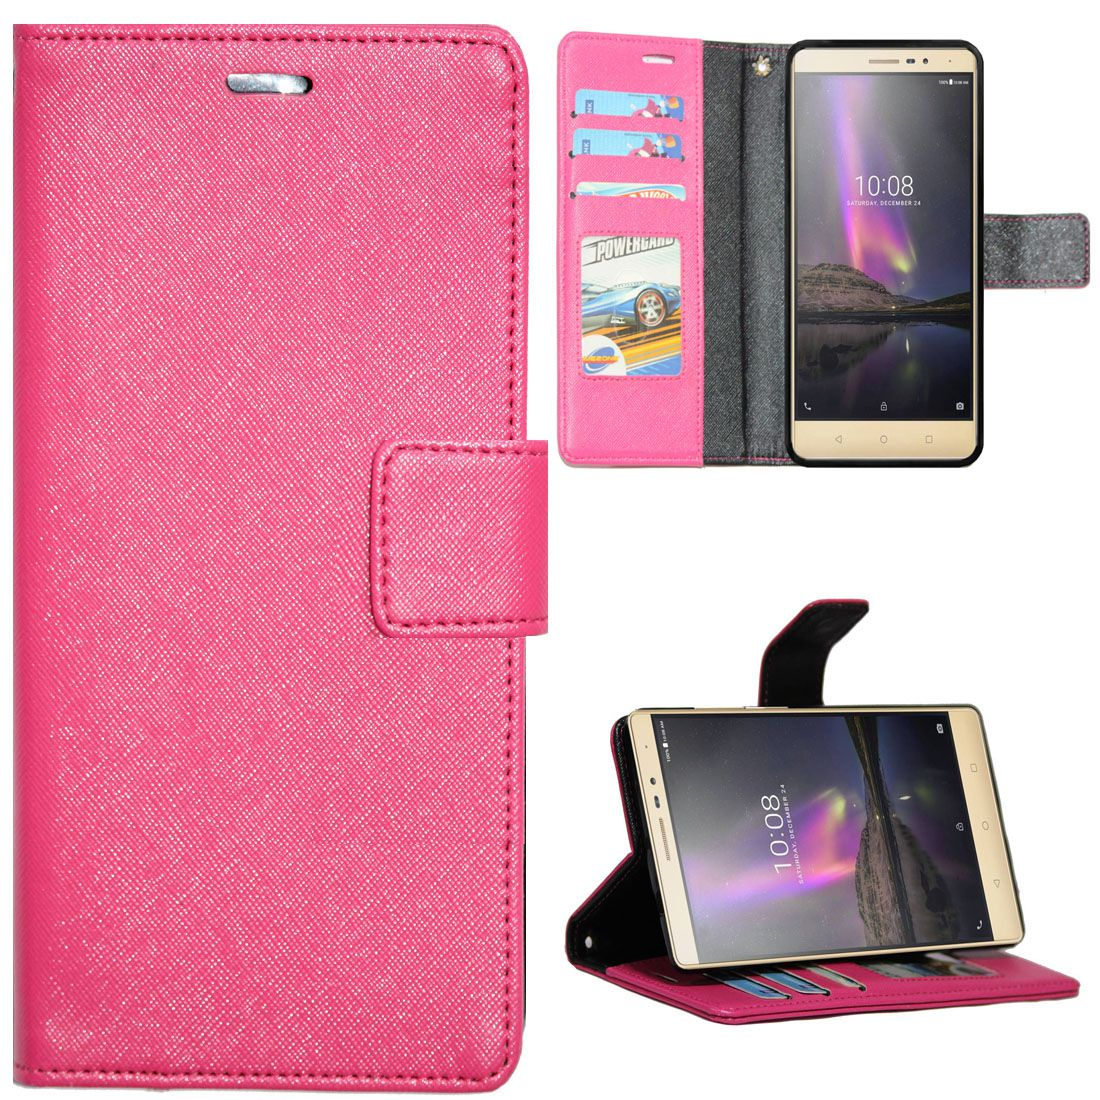 huge selection of a7a66 2223b Lenovo Phab 2 Plus Flip Cover by Gizmofreaks - Pink